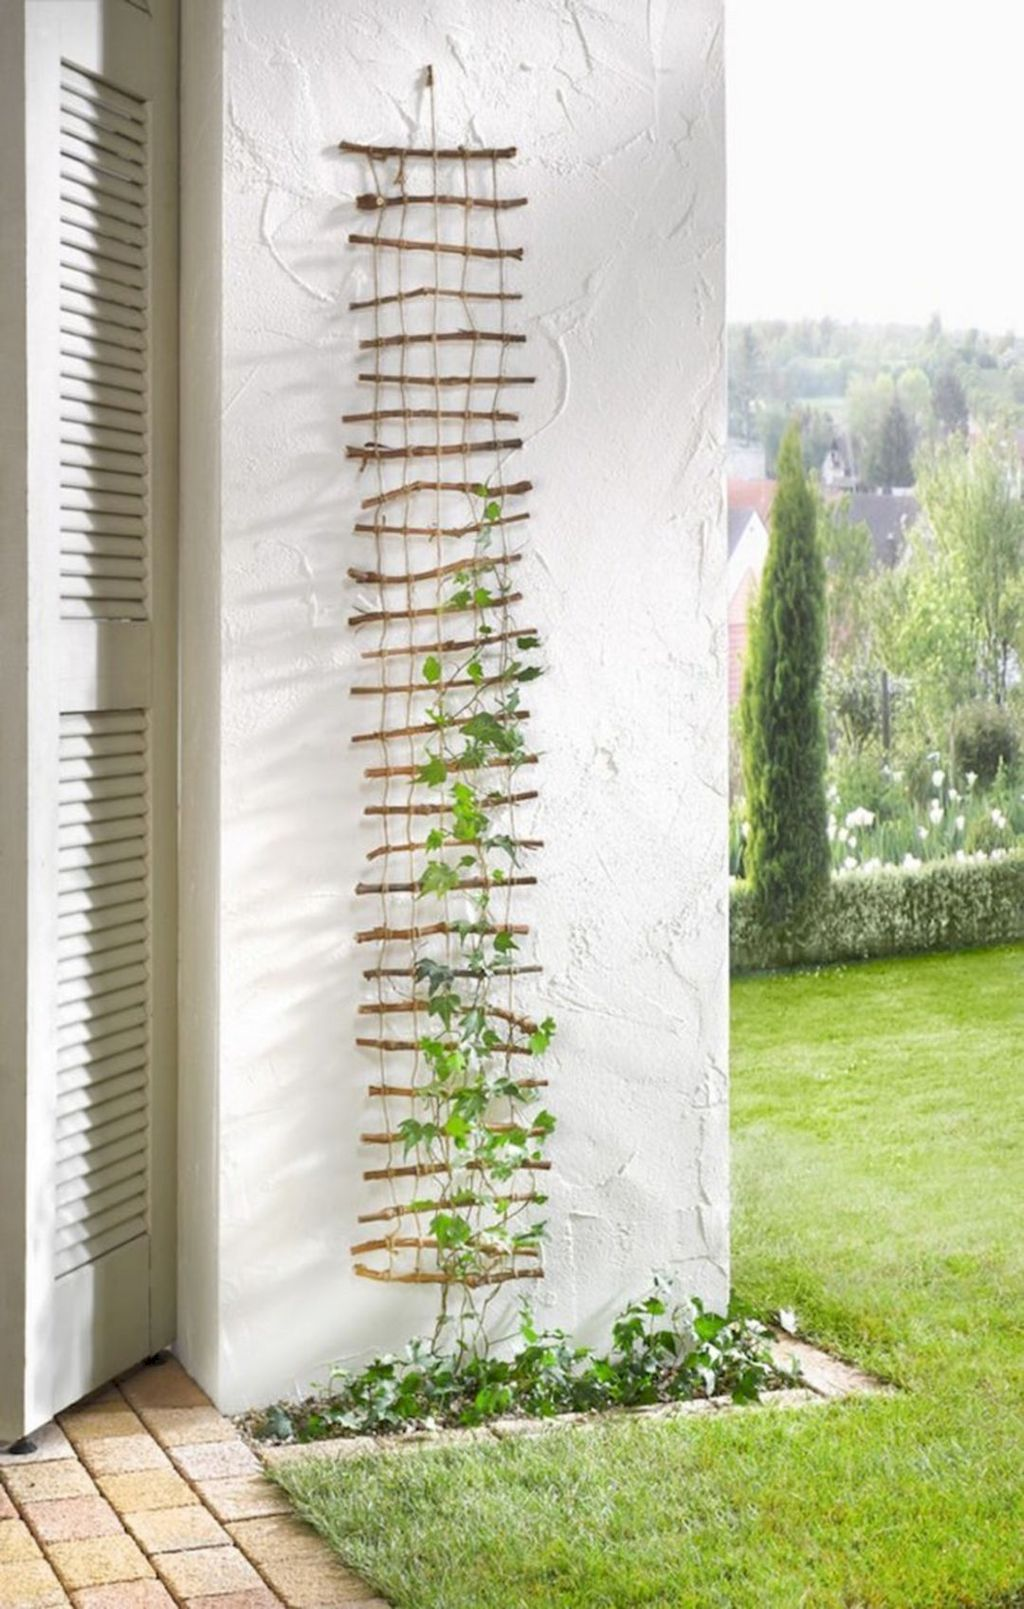 80 Amazing DIY Vertical Garden Design Ideas #gardendesignideas